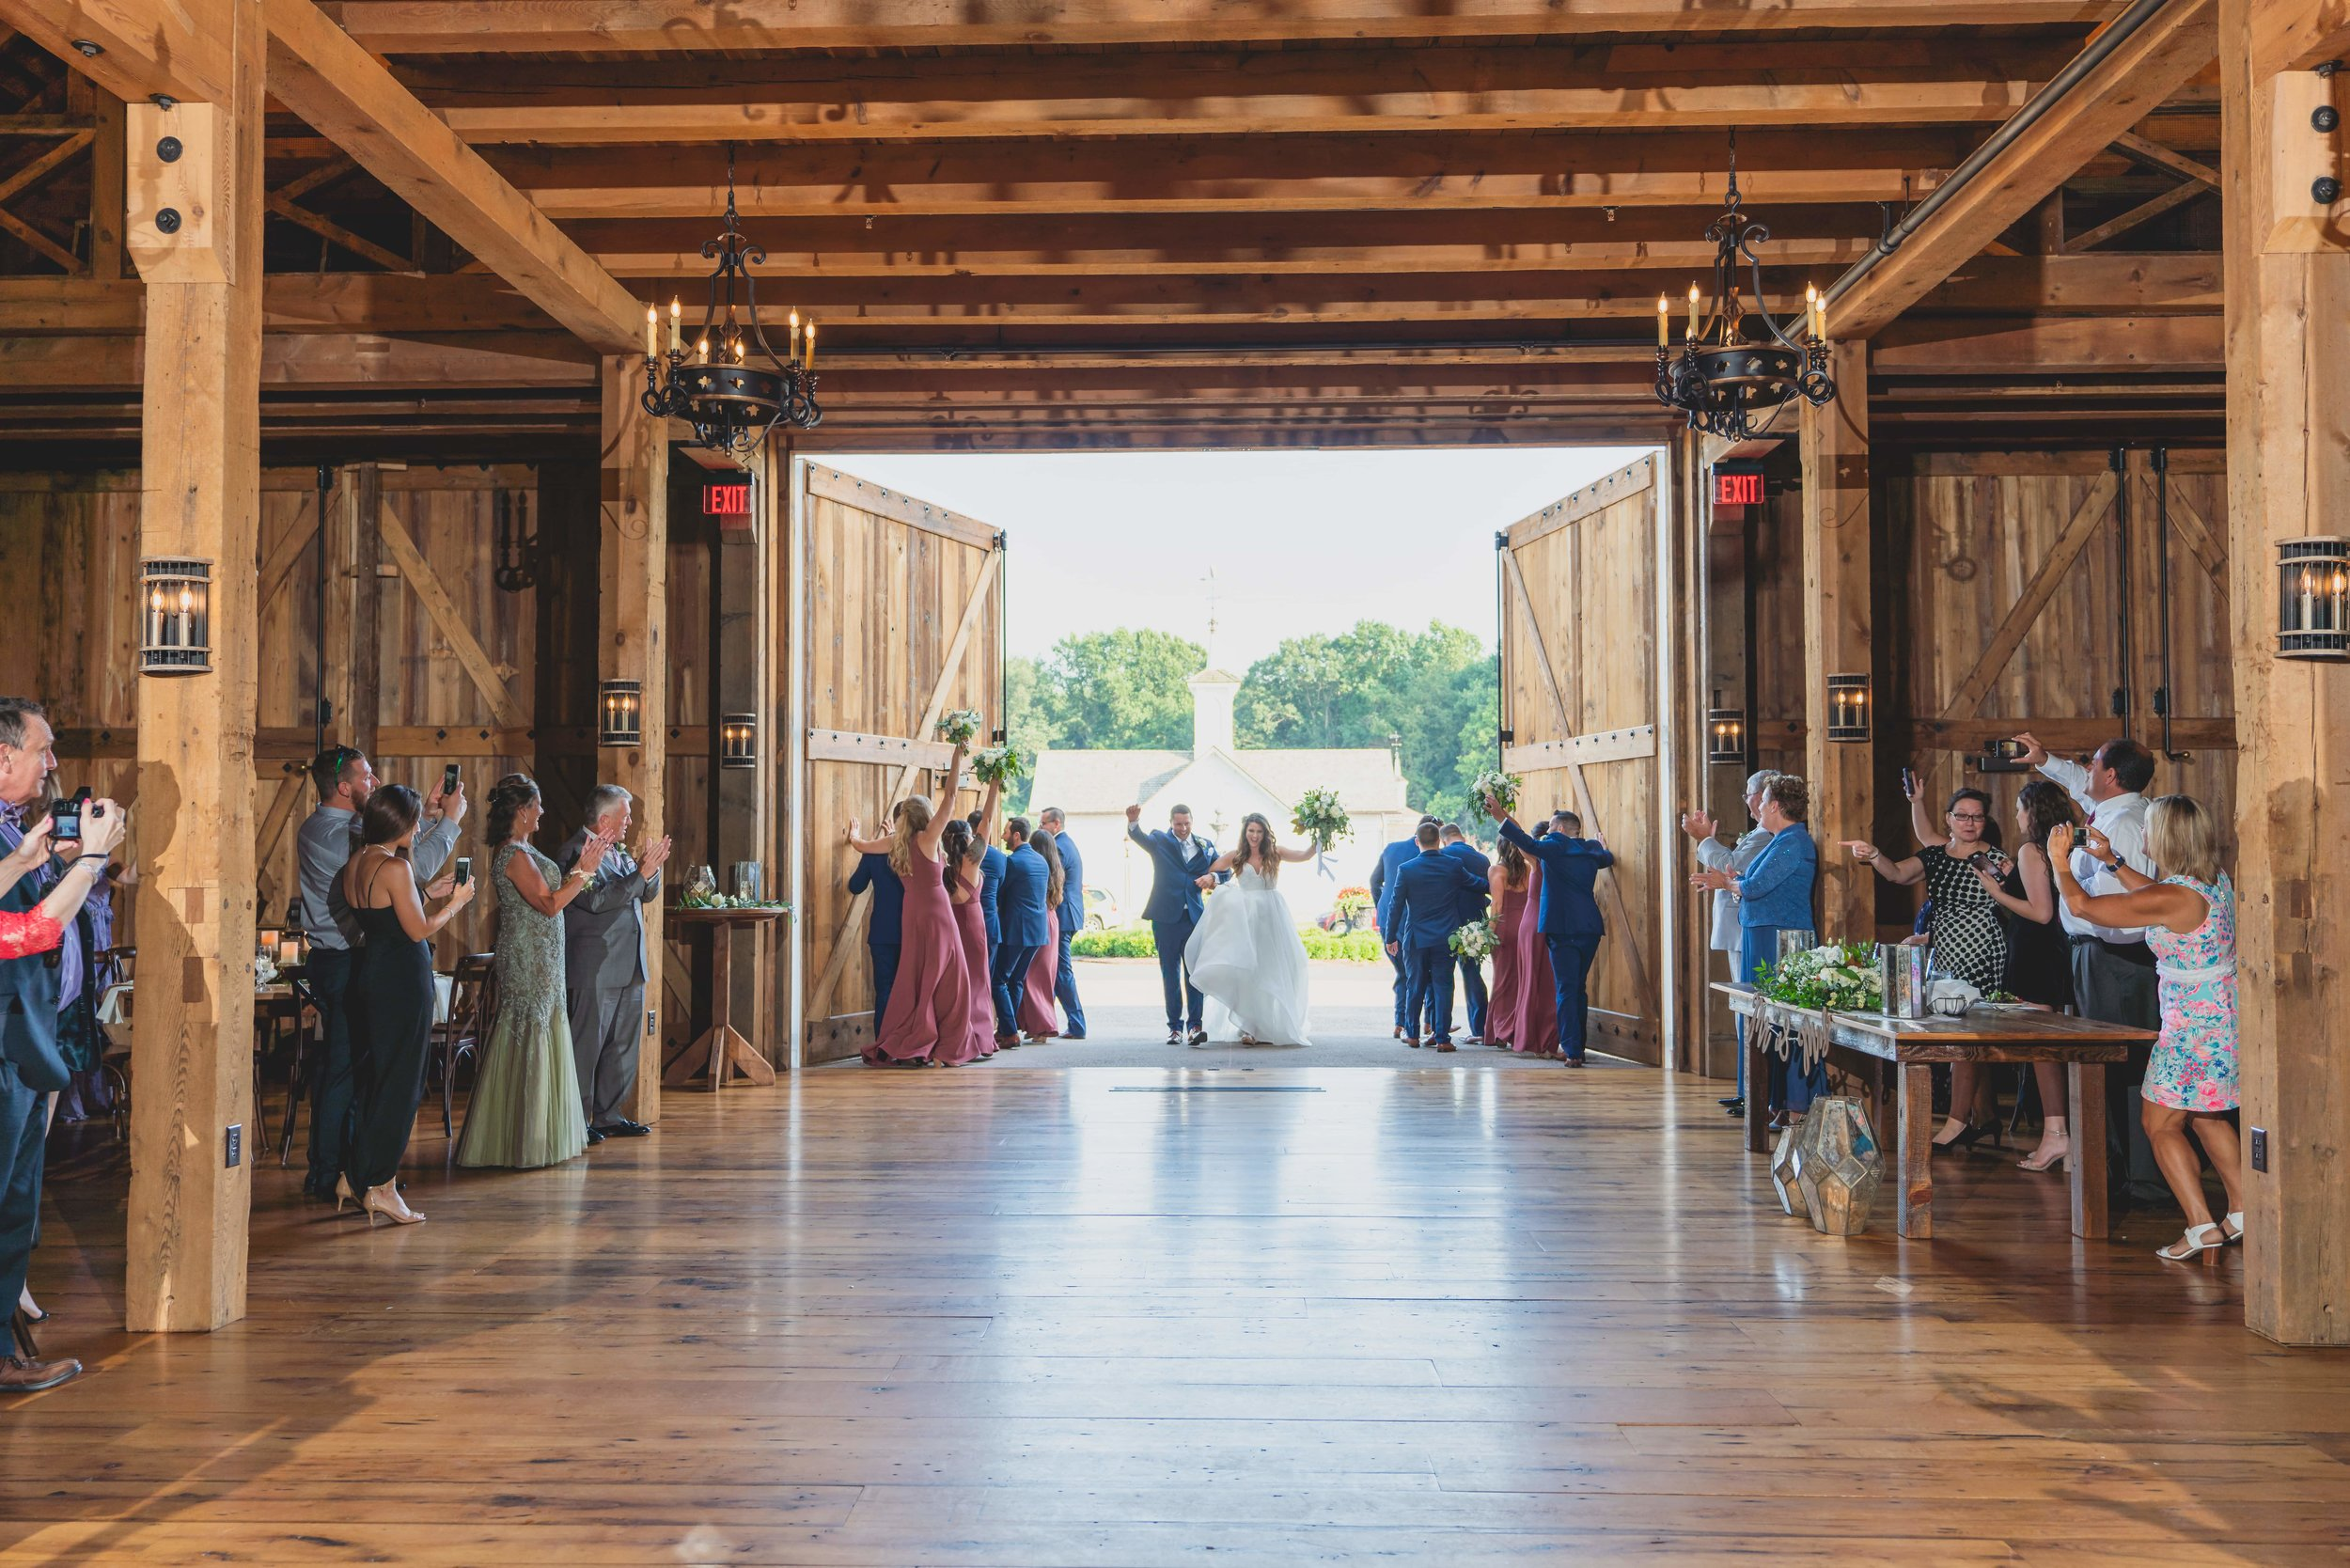 The bride and groom entering their reception, held in a large renovated barn, to the applause of their guests.